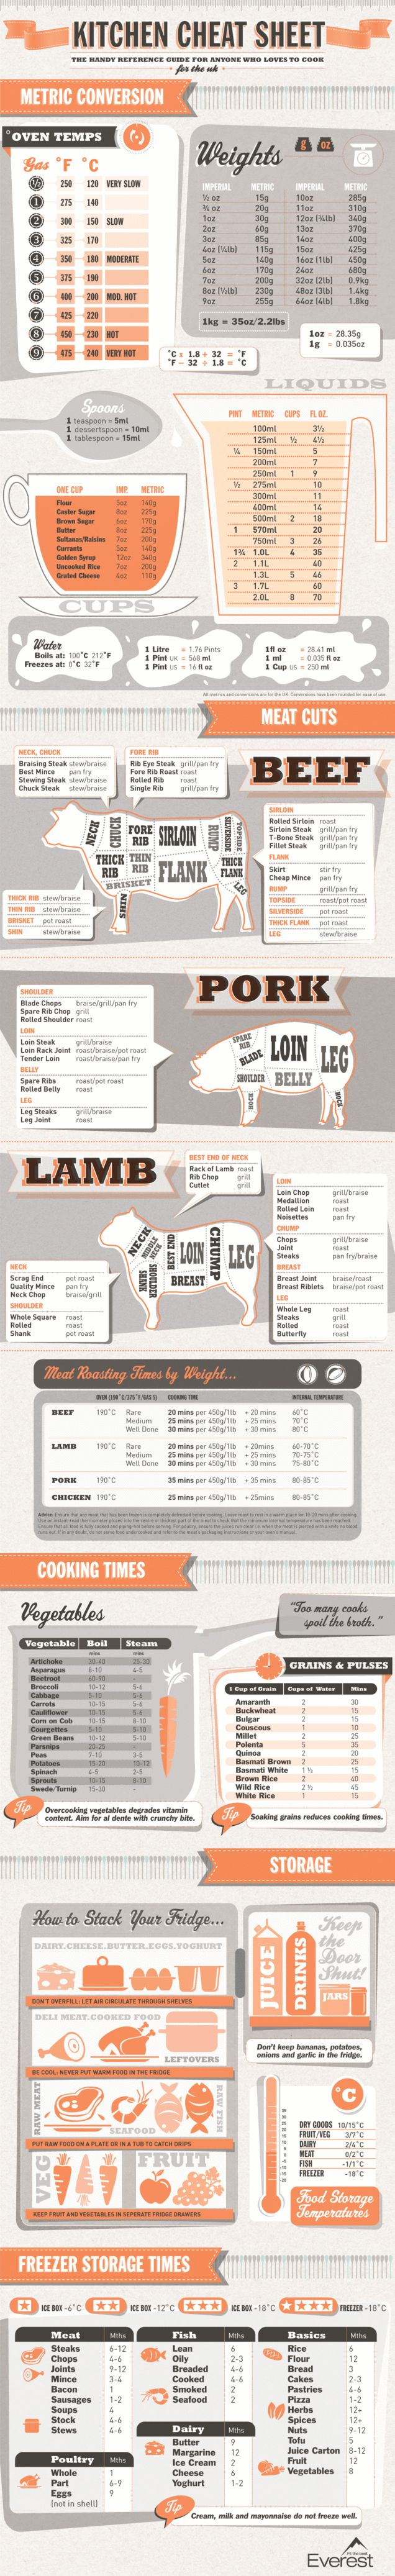 Cooking Infographic: Weights, Measures, Cuts of Meat, Cooking Times #printable #kitchen